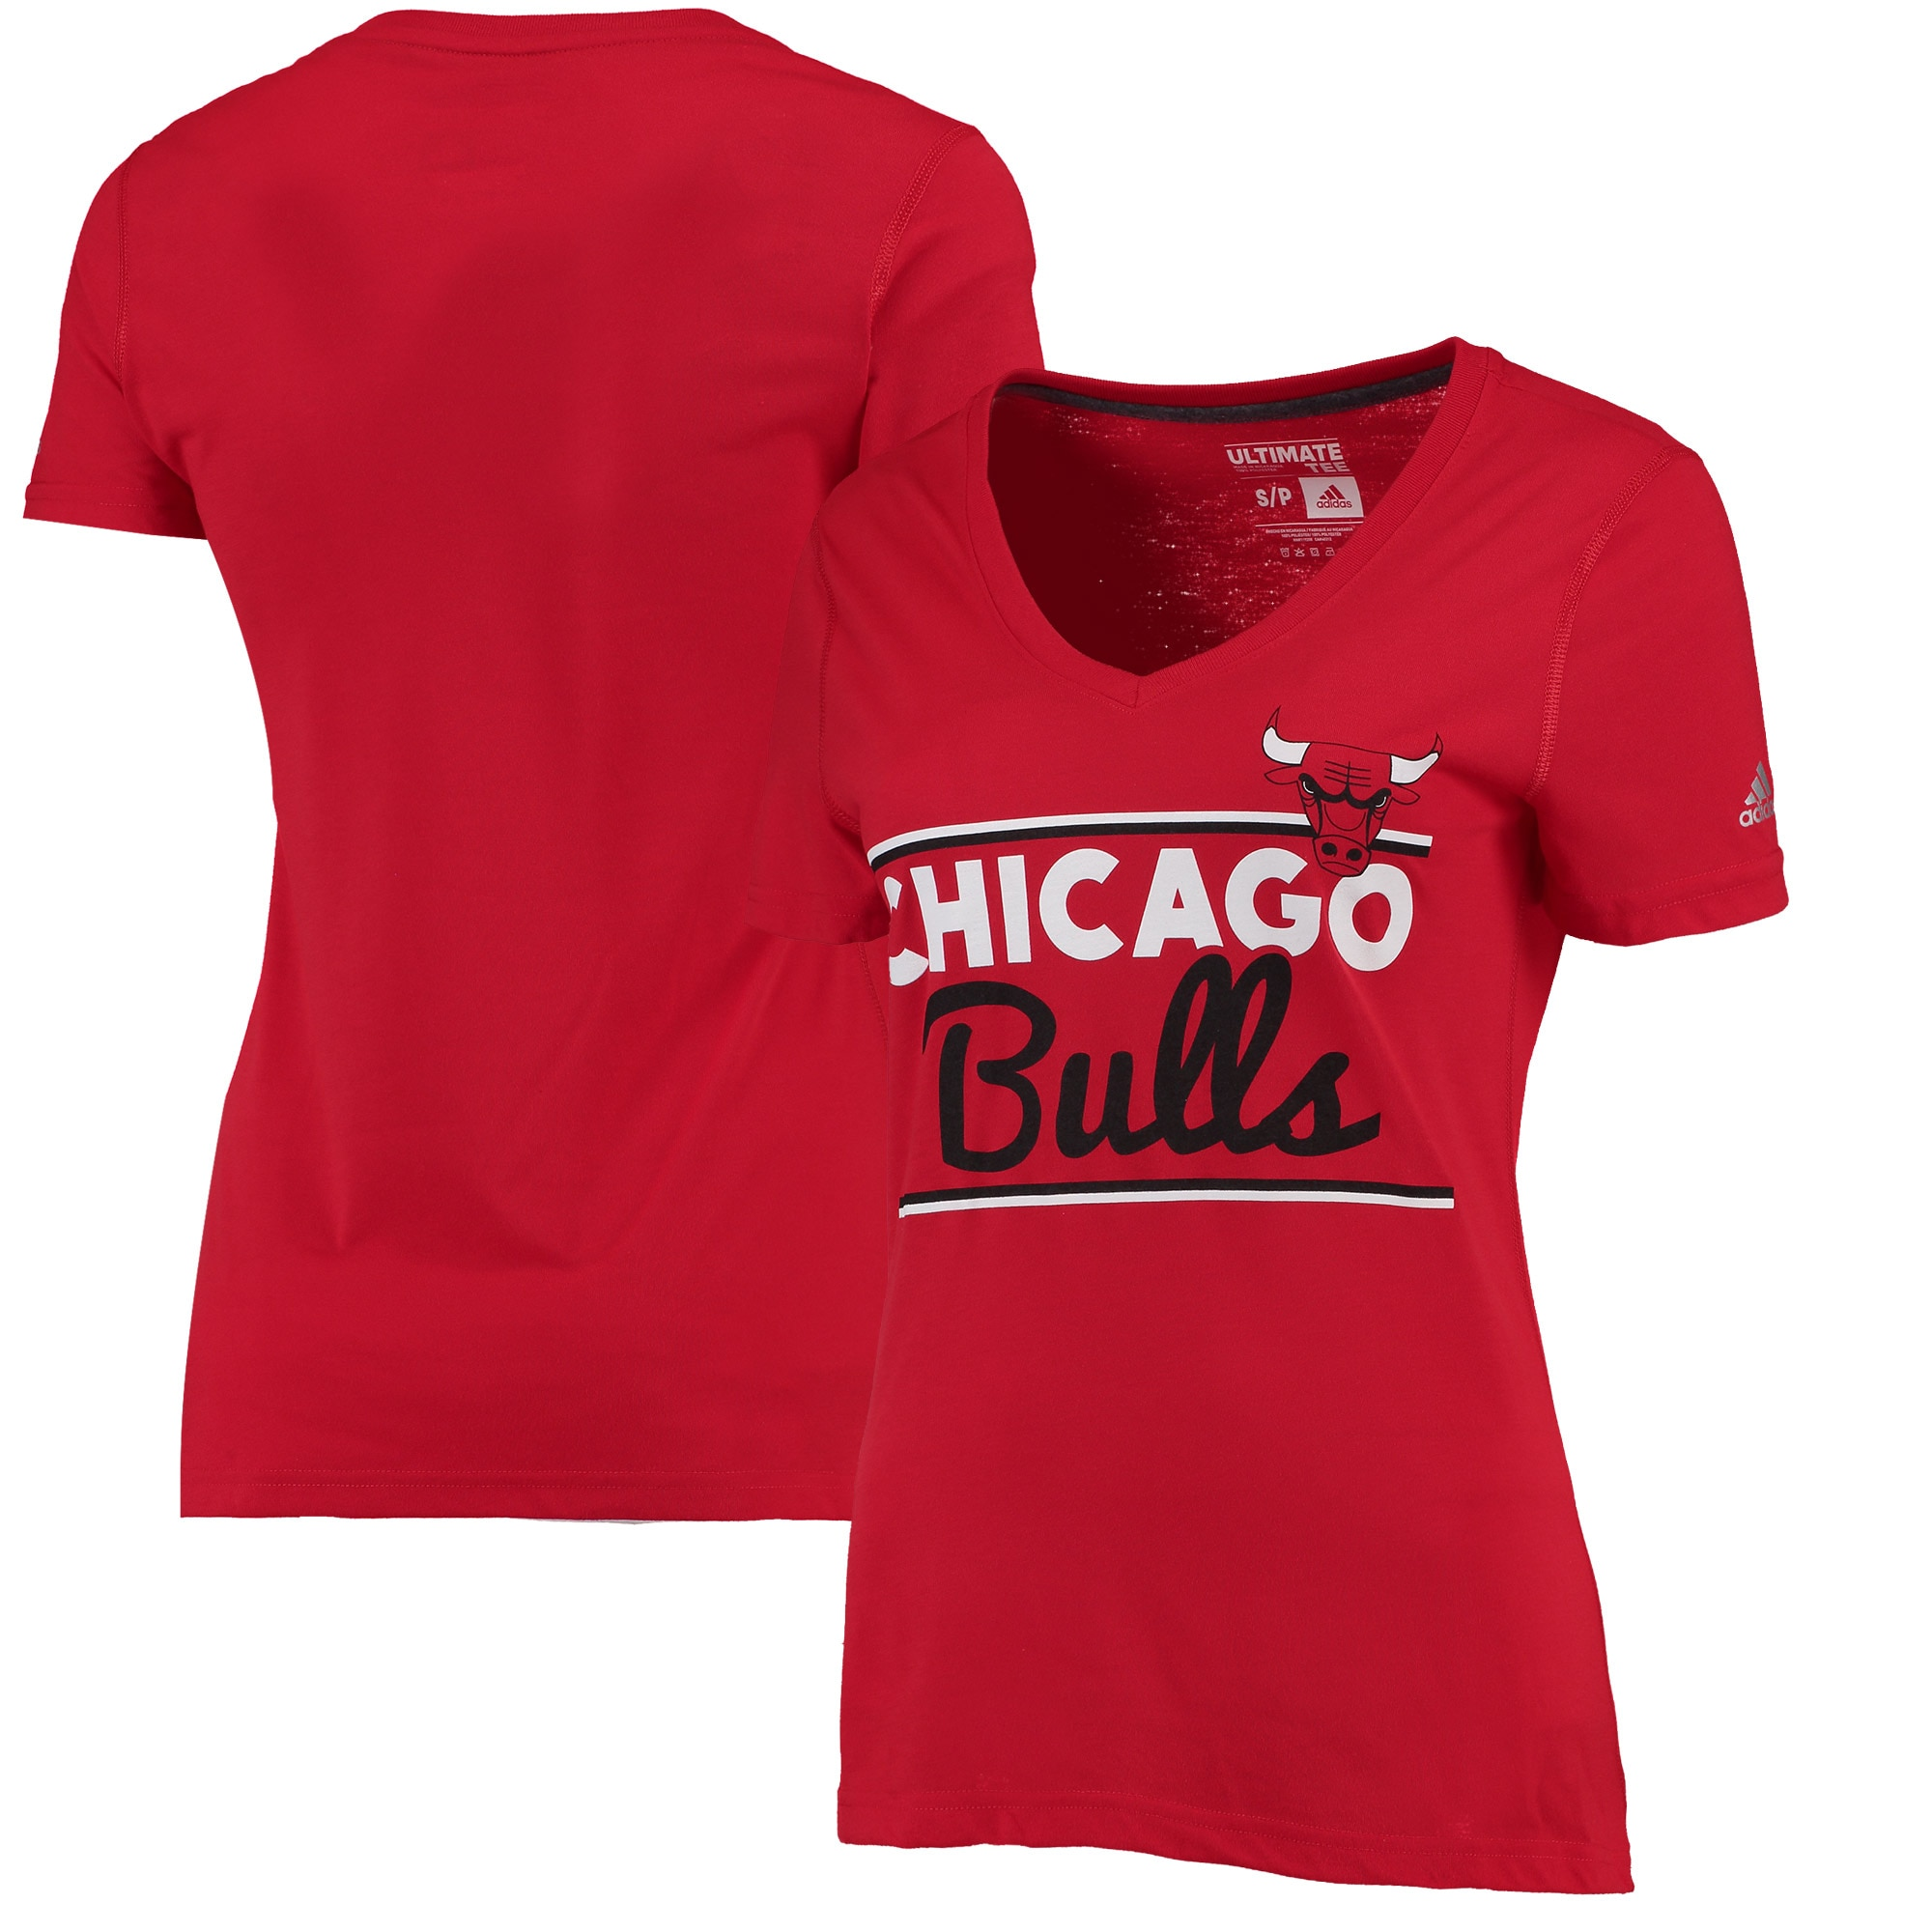 Chicago Bulls adidas Women's Double Bar Ultimate climalite T-Shirt - Red